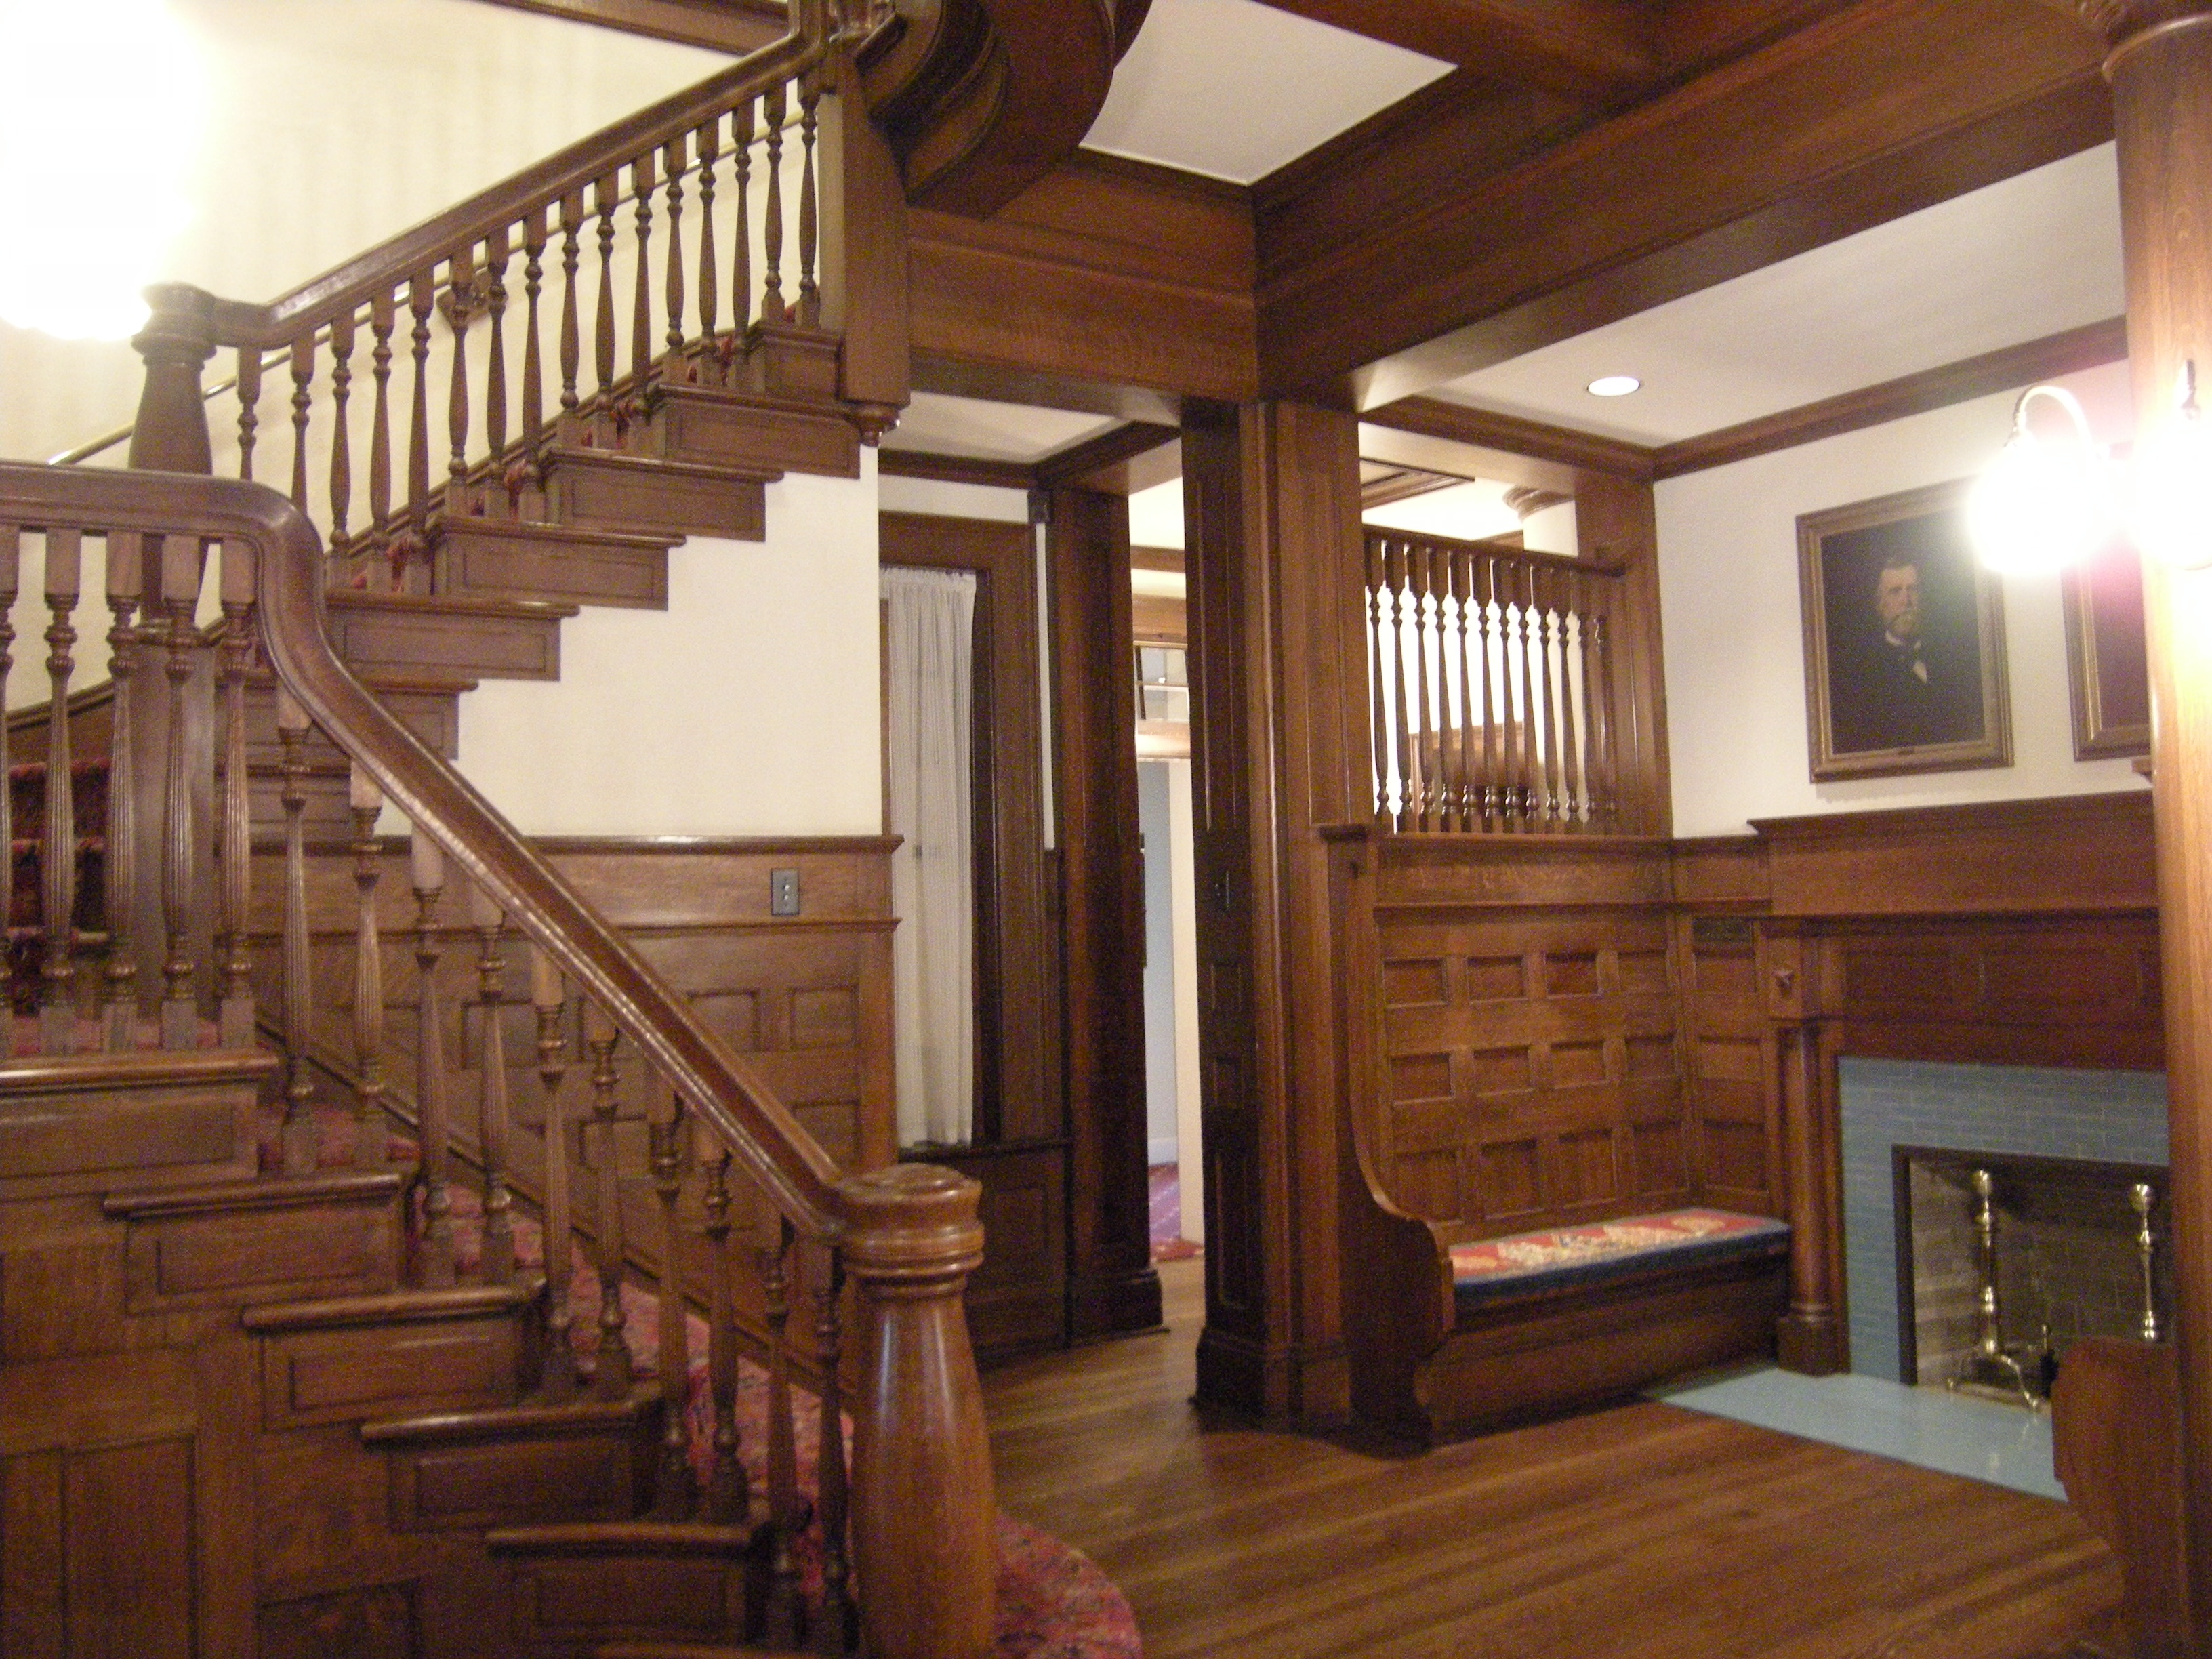 wood interior homes file dallas a h belo house interior 01 jpg wikimedia 15468